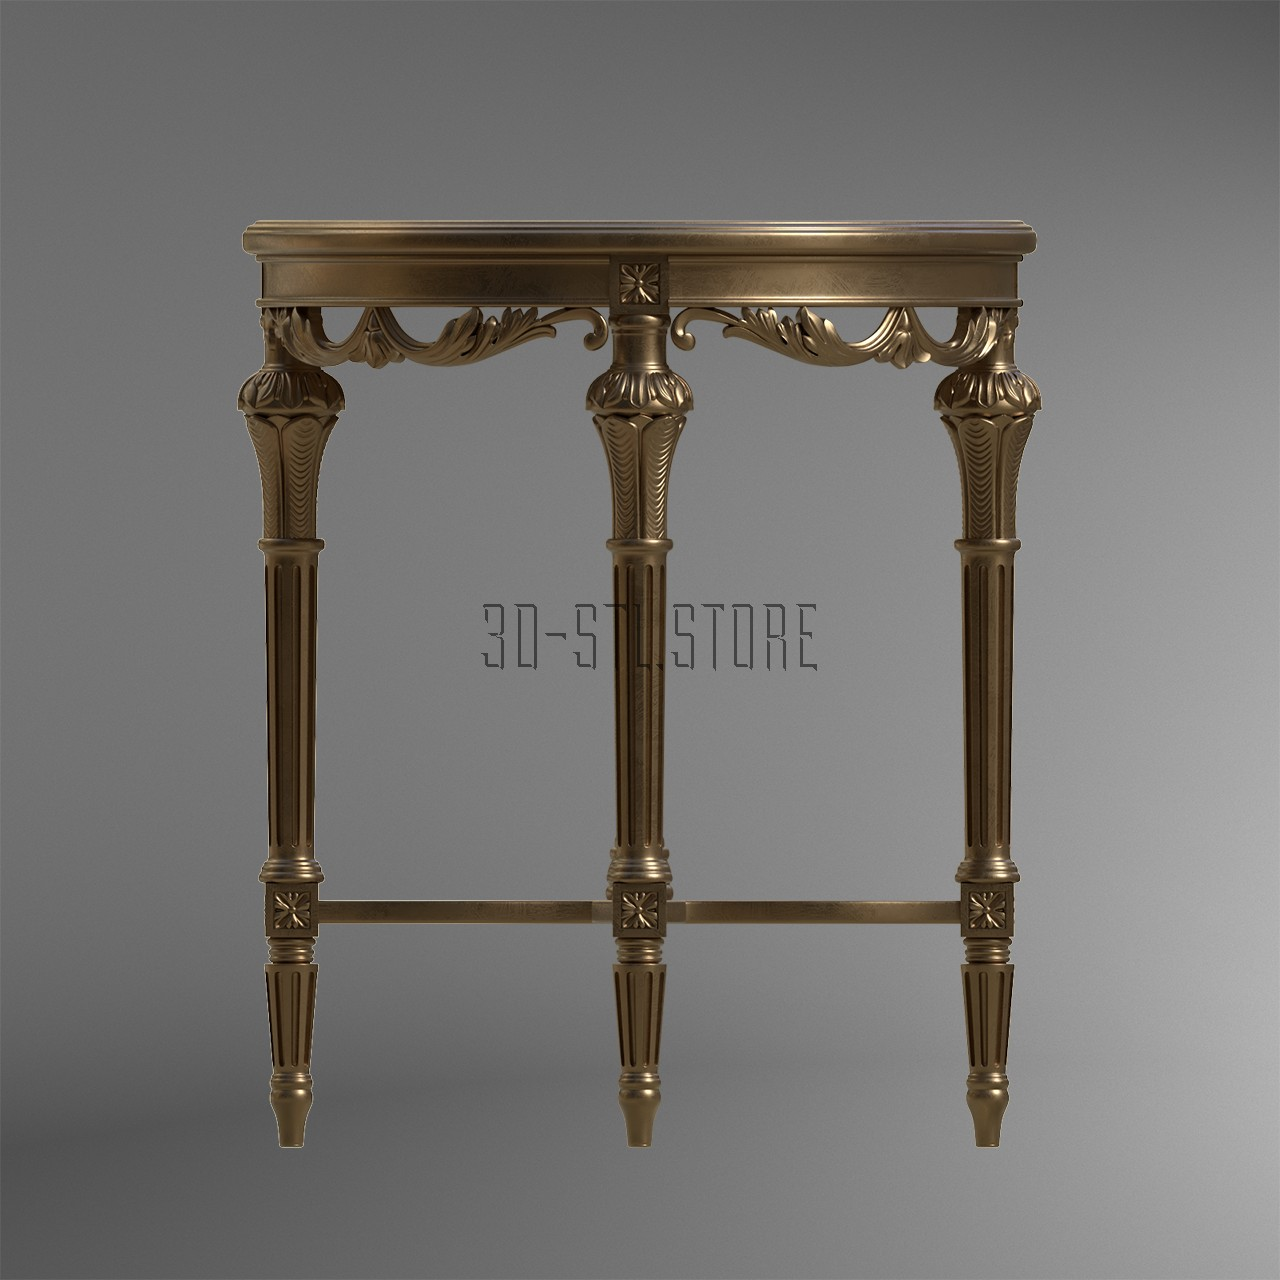 Table with thin legs, 3d models (stl)